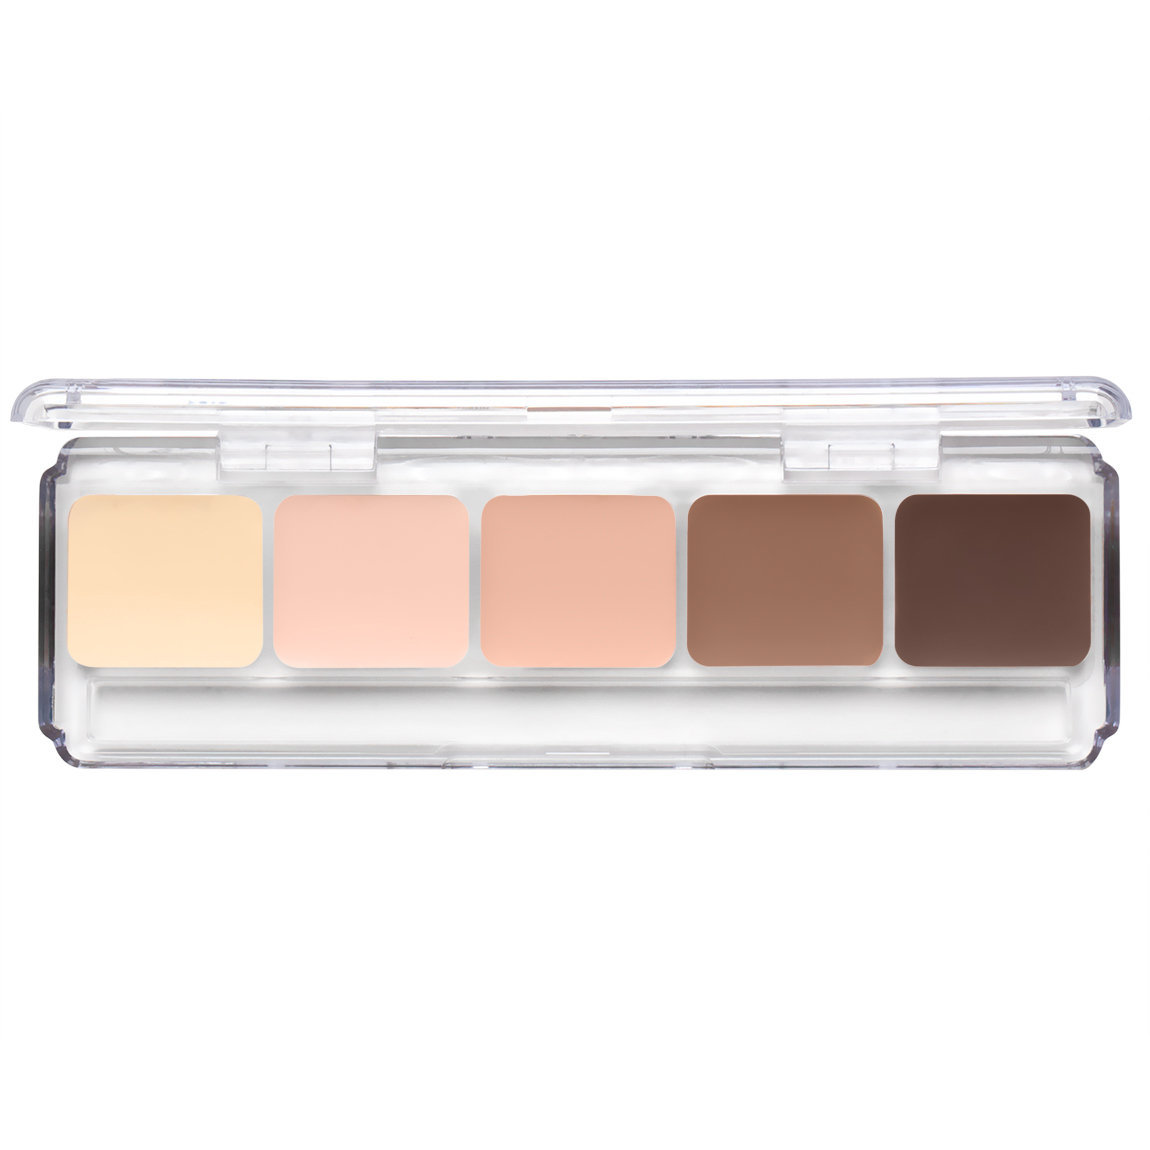 RCMA Makeup Highlight and Contouring Palette alternative view 1.